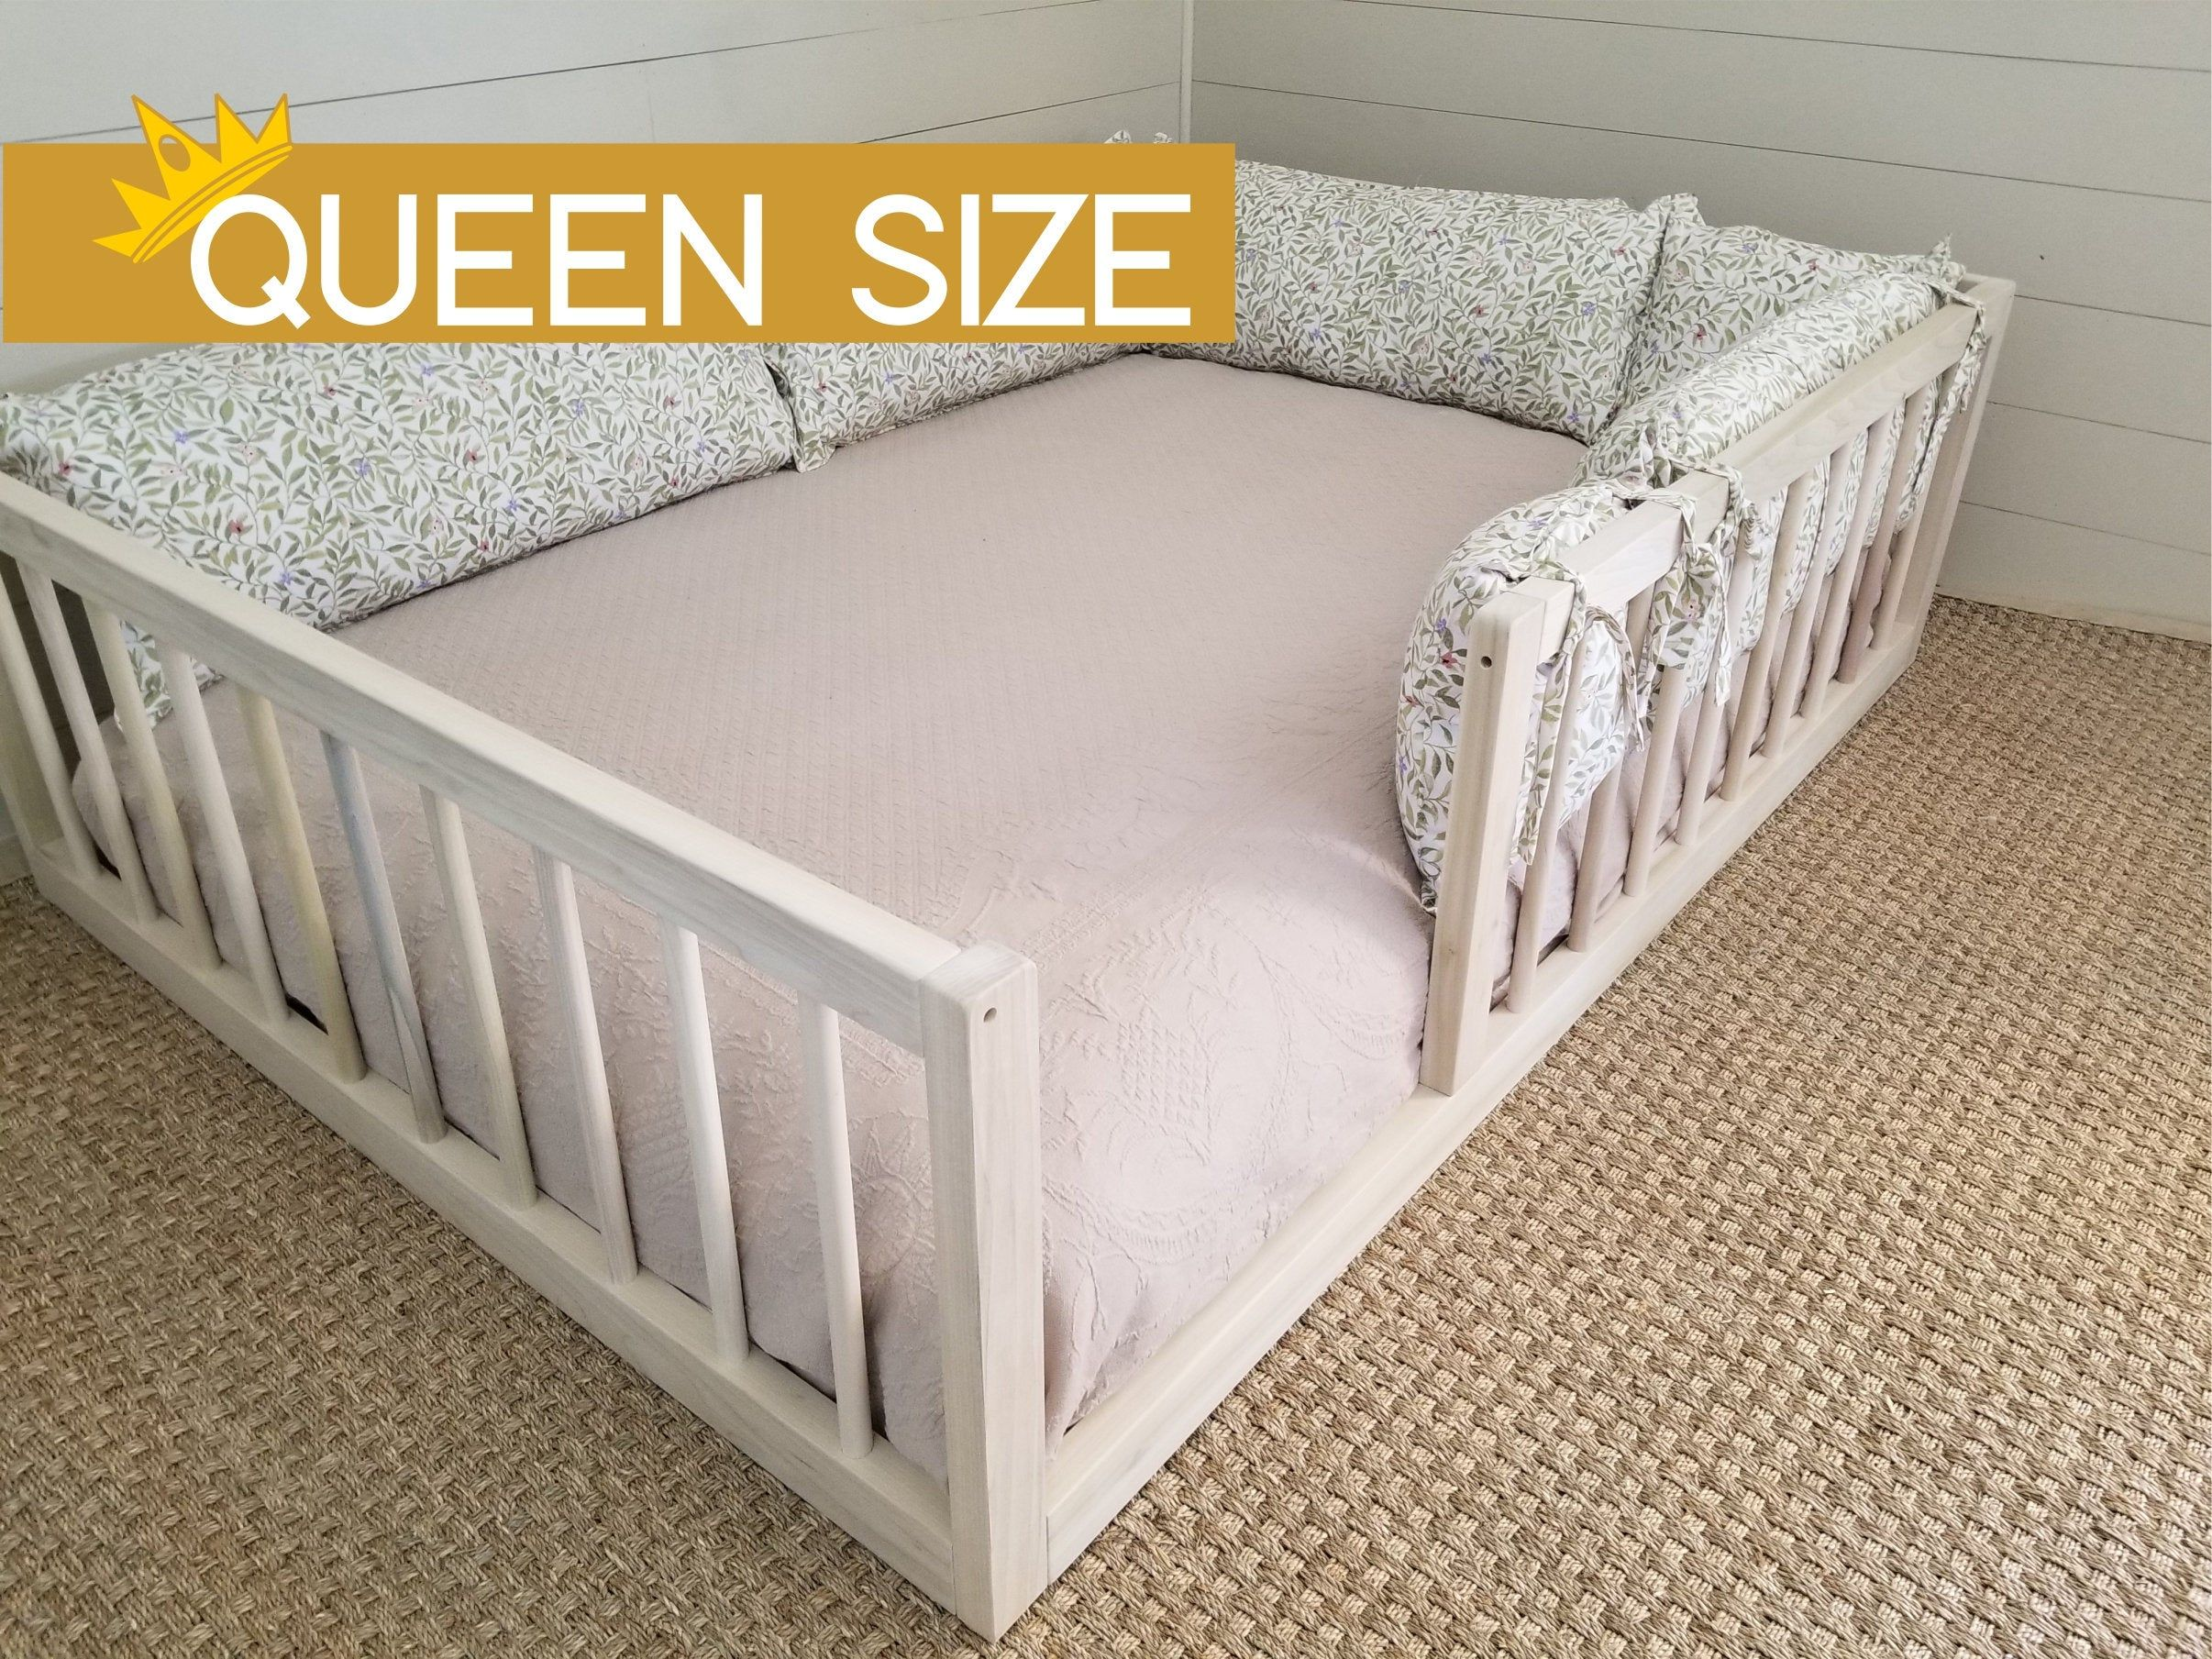 New Queen Montessori Floor Bed With Rails Floor Bed Hardwood Made